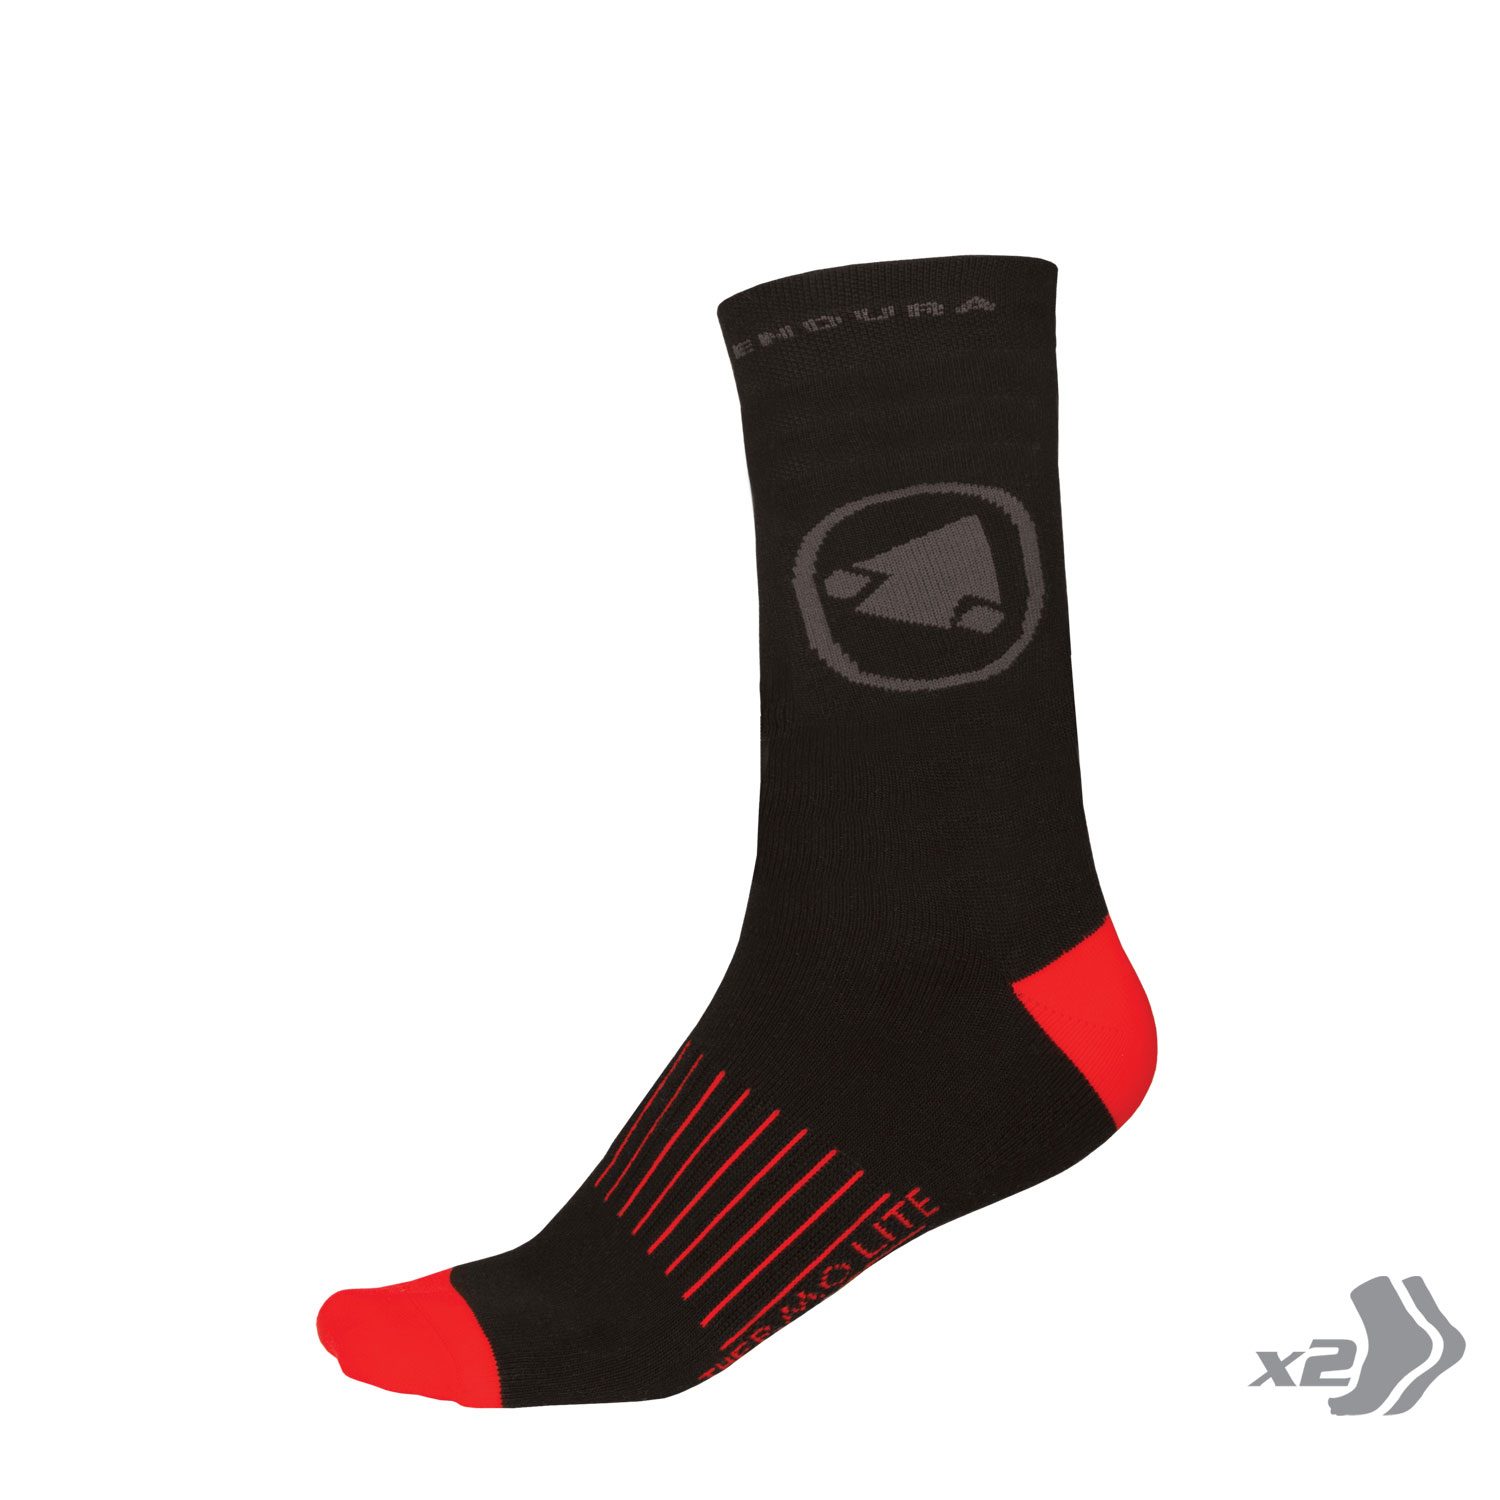 Endura THERMOLITE II (L-XL) Thermal Insulation Cycling Socks - Twin pack